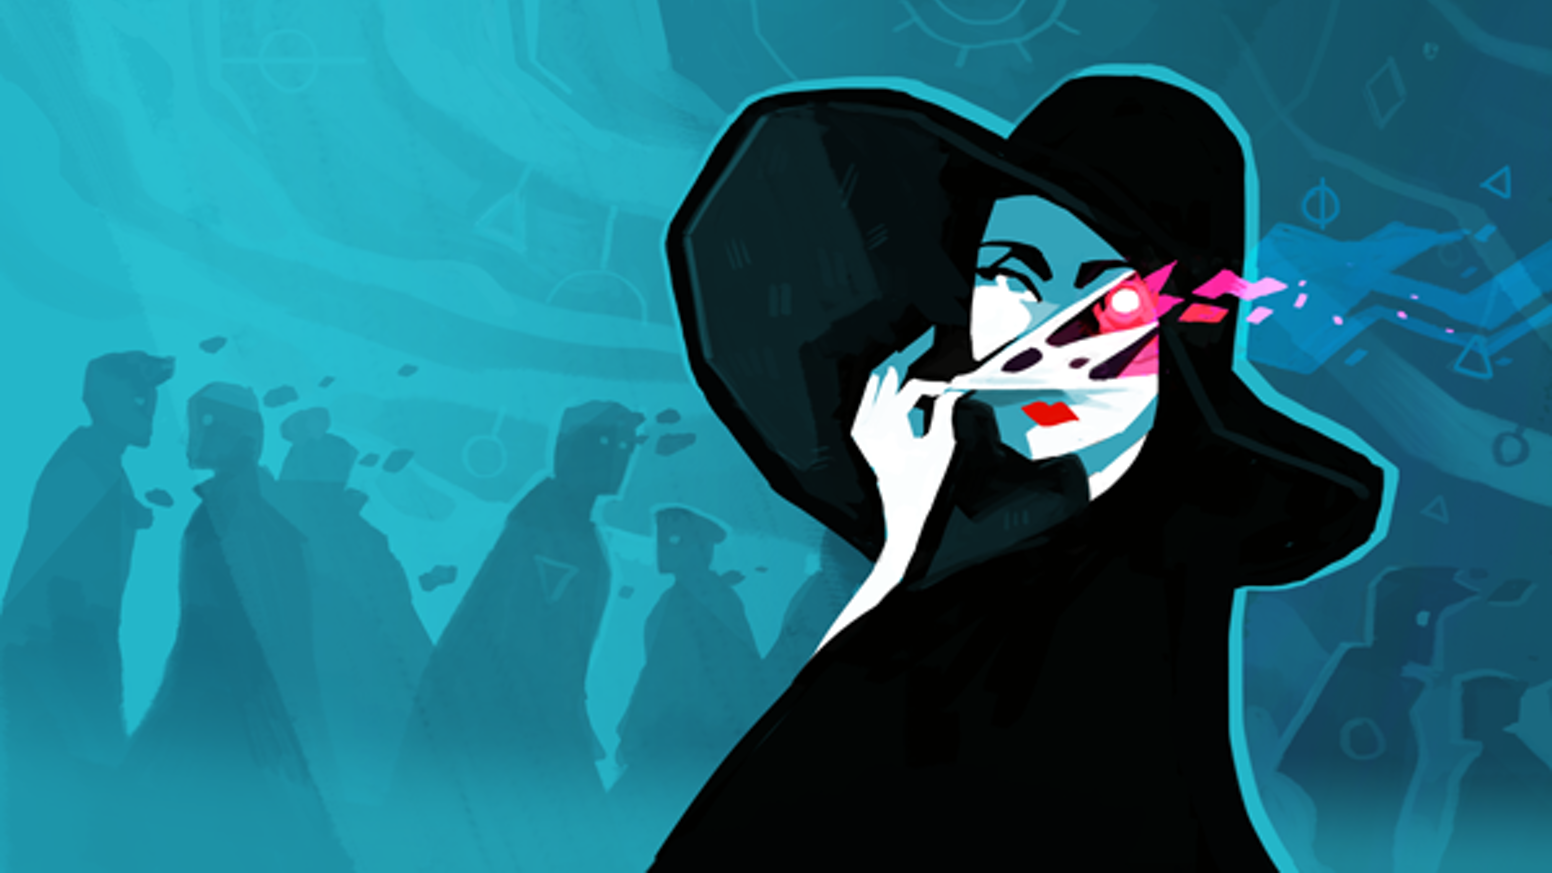 Cultist Simulator: Descending into madness has rarely been this intruiging